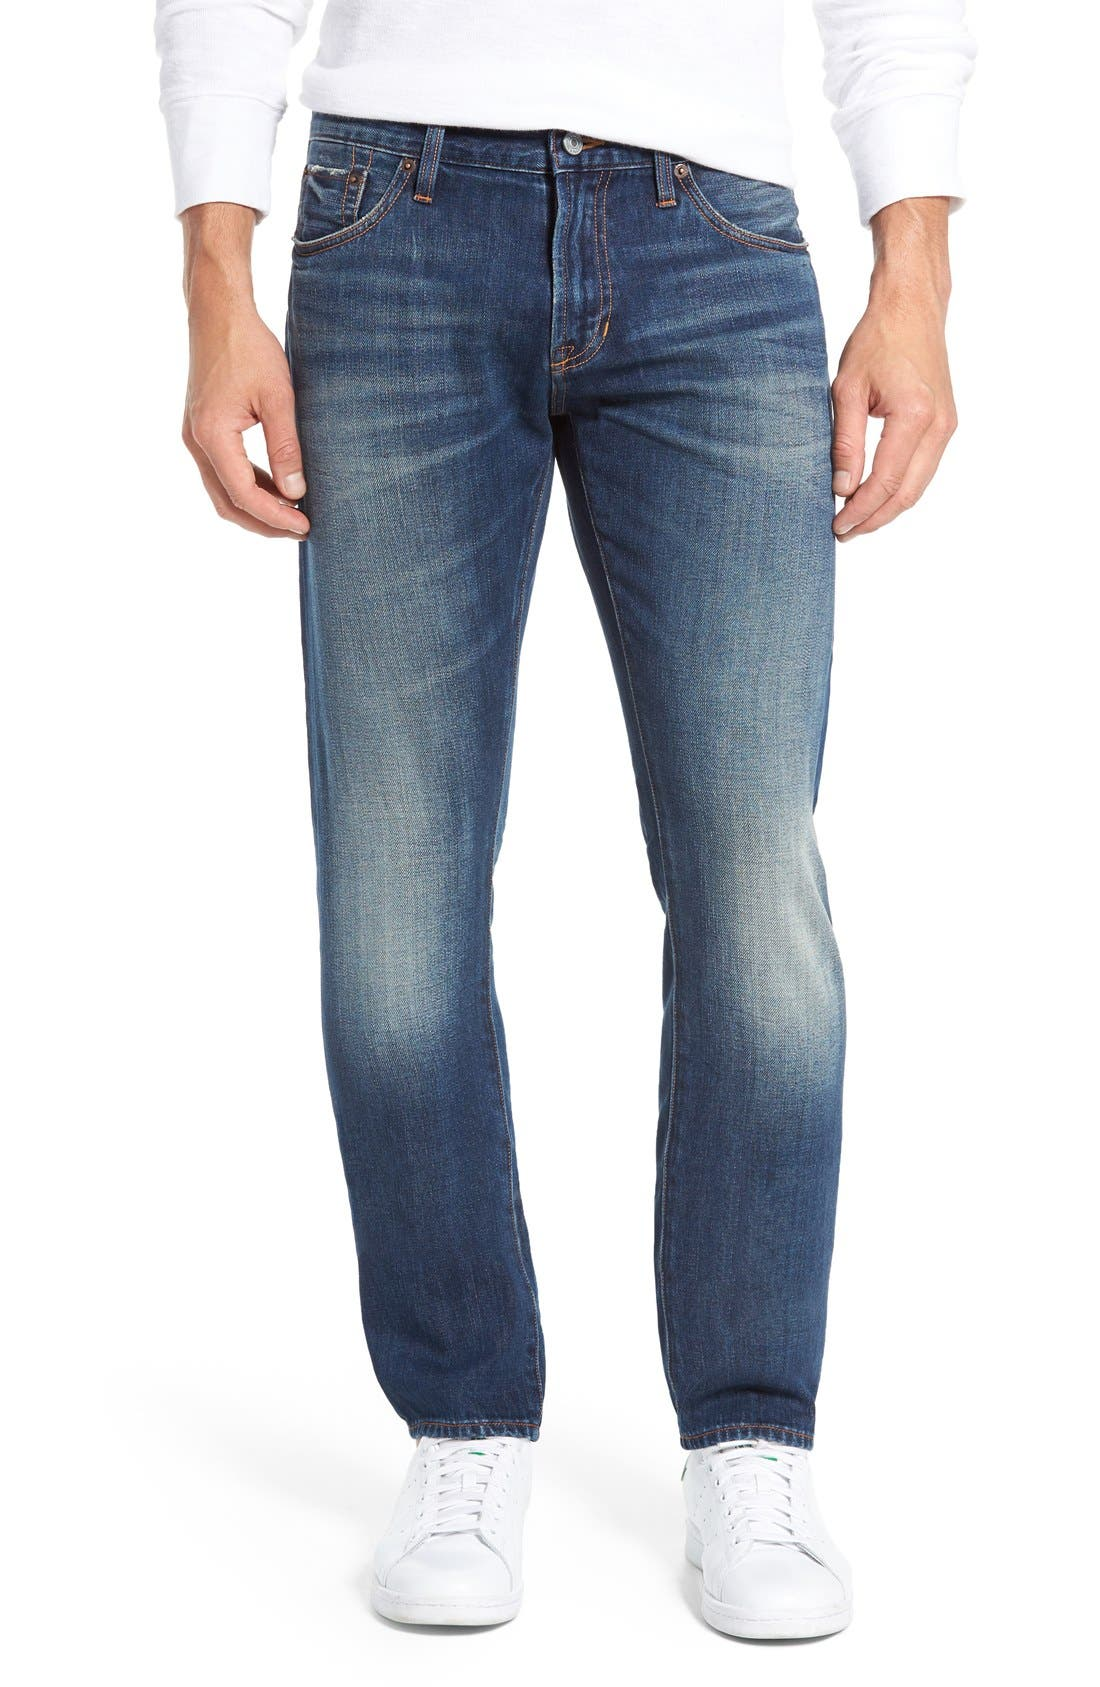 JEAN SHOP Slim Straight Leg Selvedge Jeans